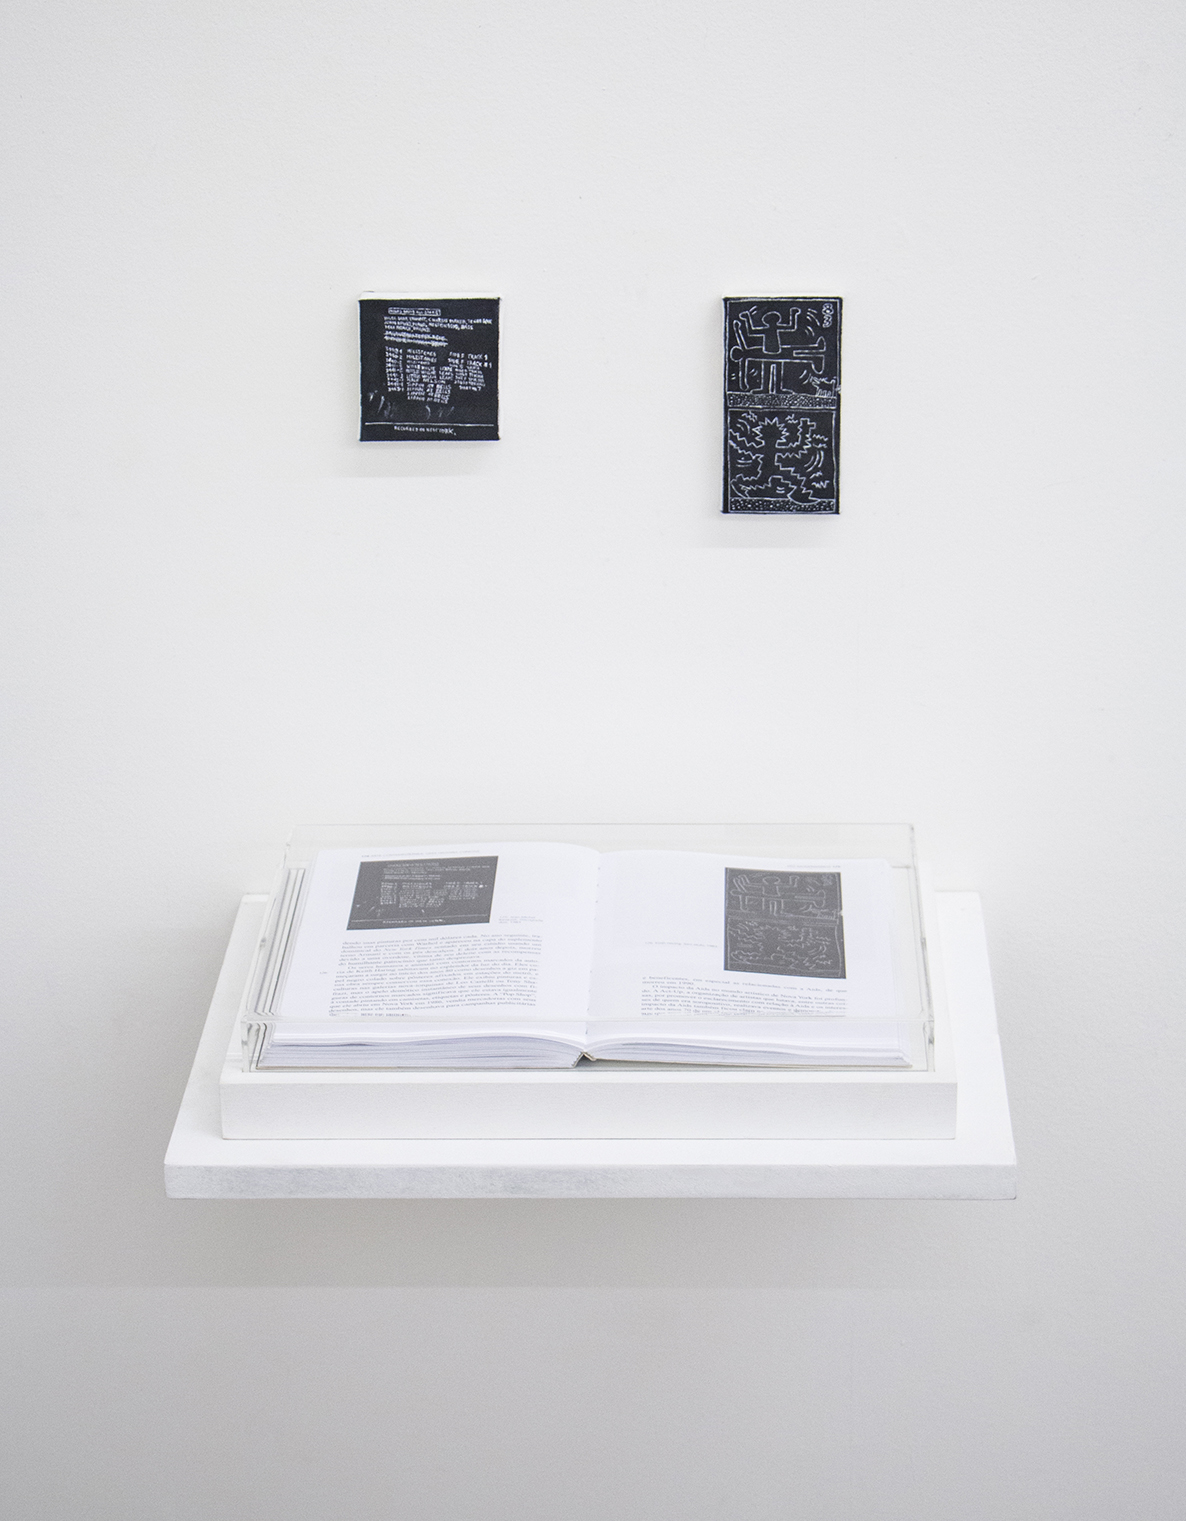 Pages 174 and 175(  That's How I Was Taught series  ) • 2014 • Framed book, oil on canvas • 8.45 x 12.2 in (book), 2.9 x 3 in, 2.35 x 4.6 in